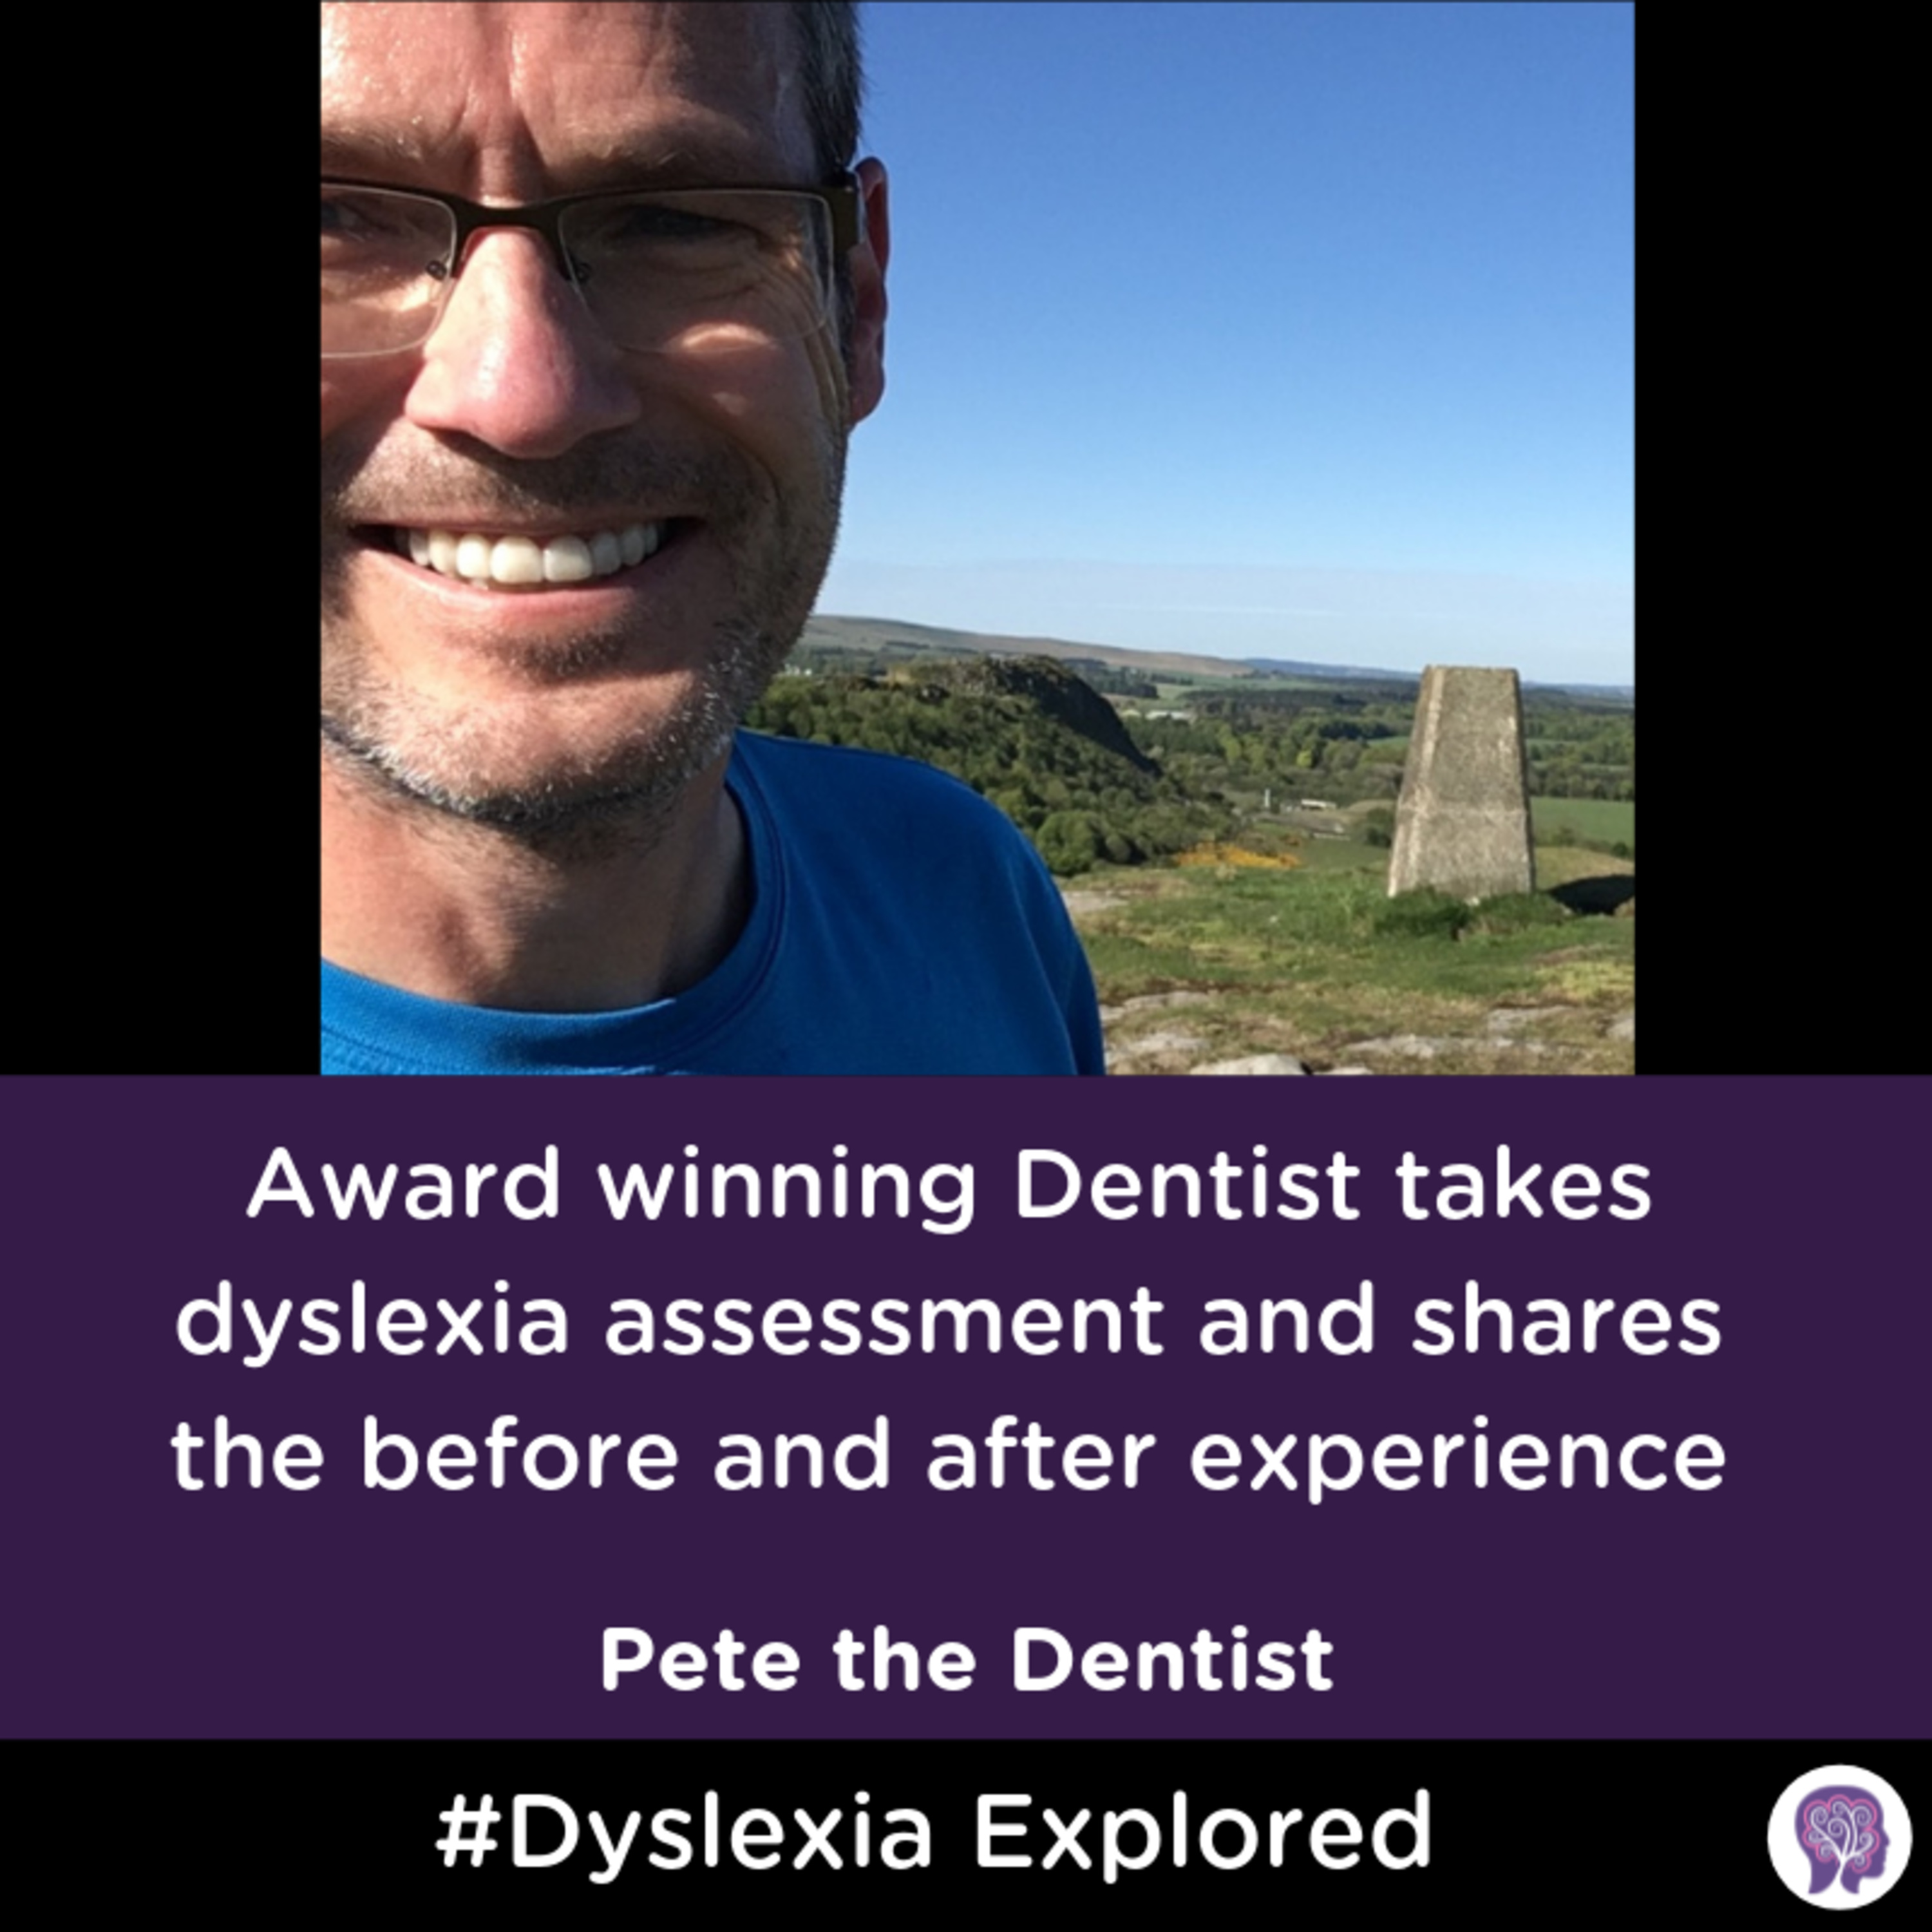 #39 Award-winning Dentist takes a dyslexia assessment and shares the before and after the experience